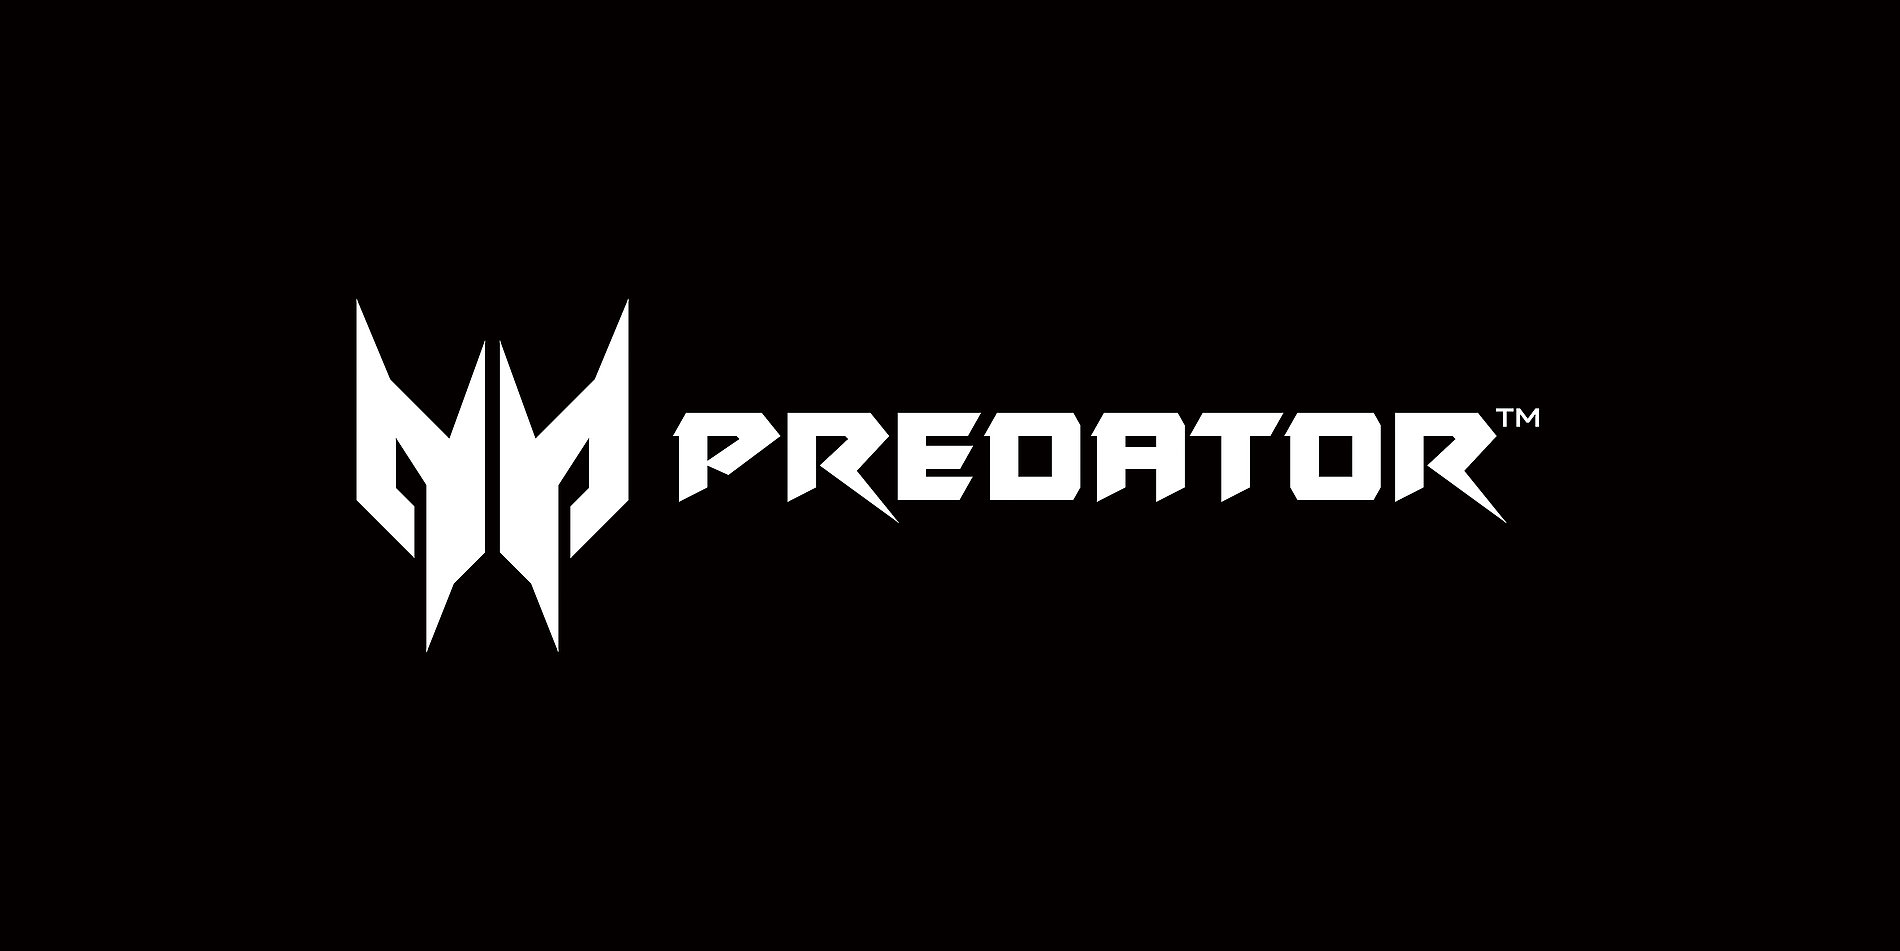 PREDATOR | Red Dot Design Award